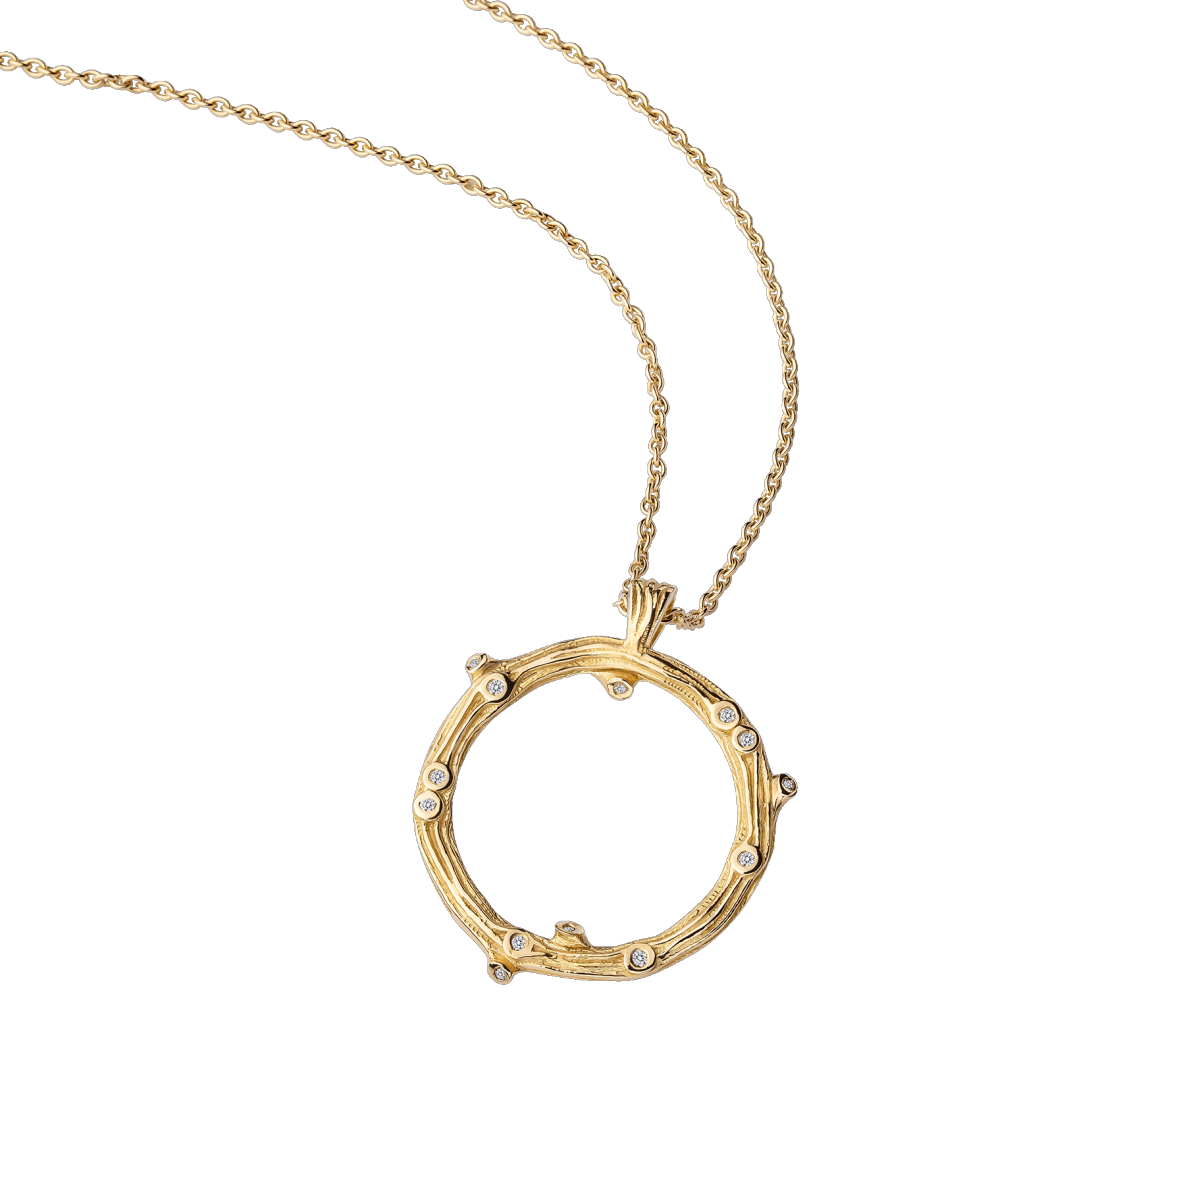 Necklace La Passion est un Volcan, yellow gold et diamonds